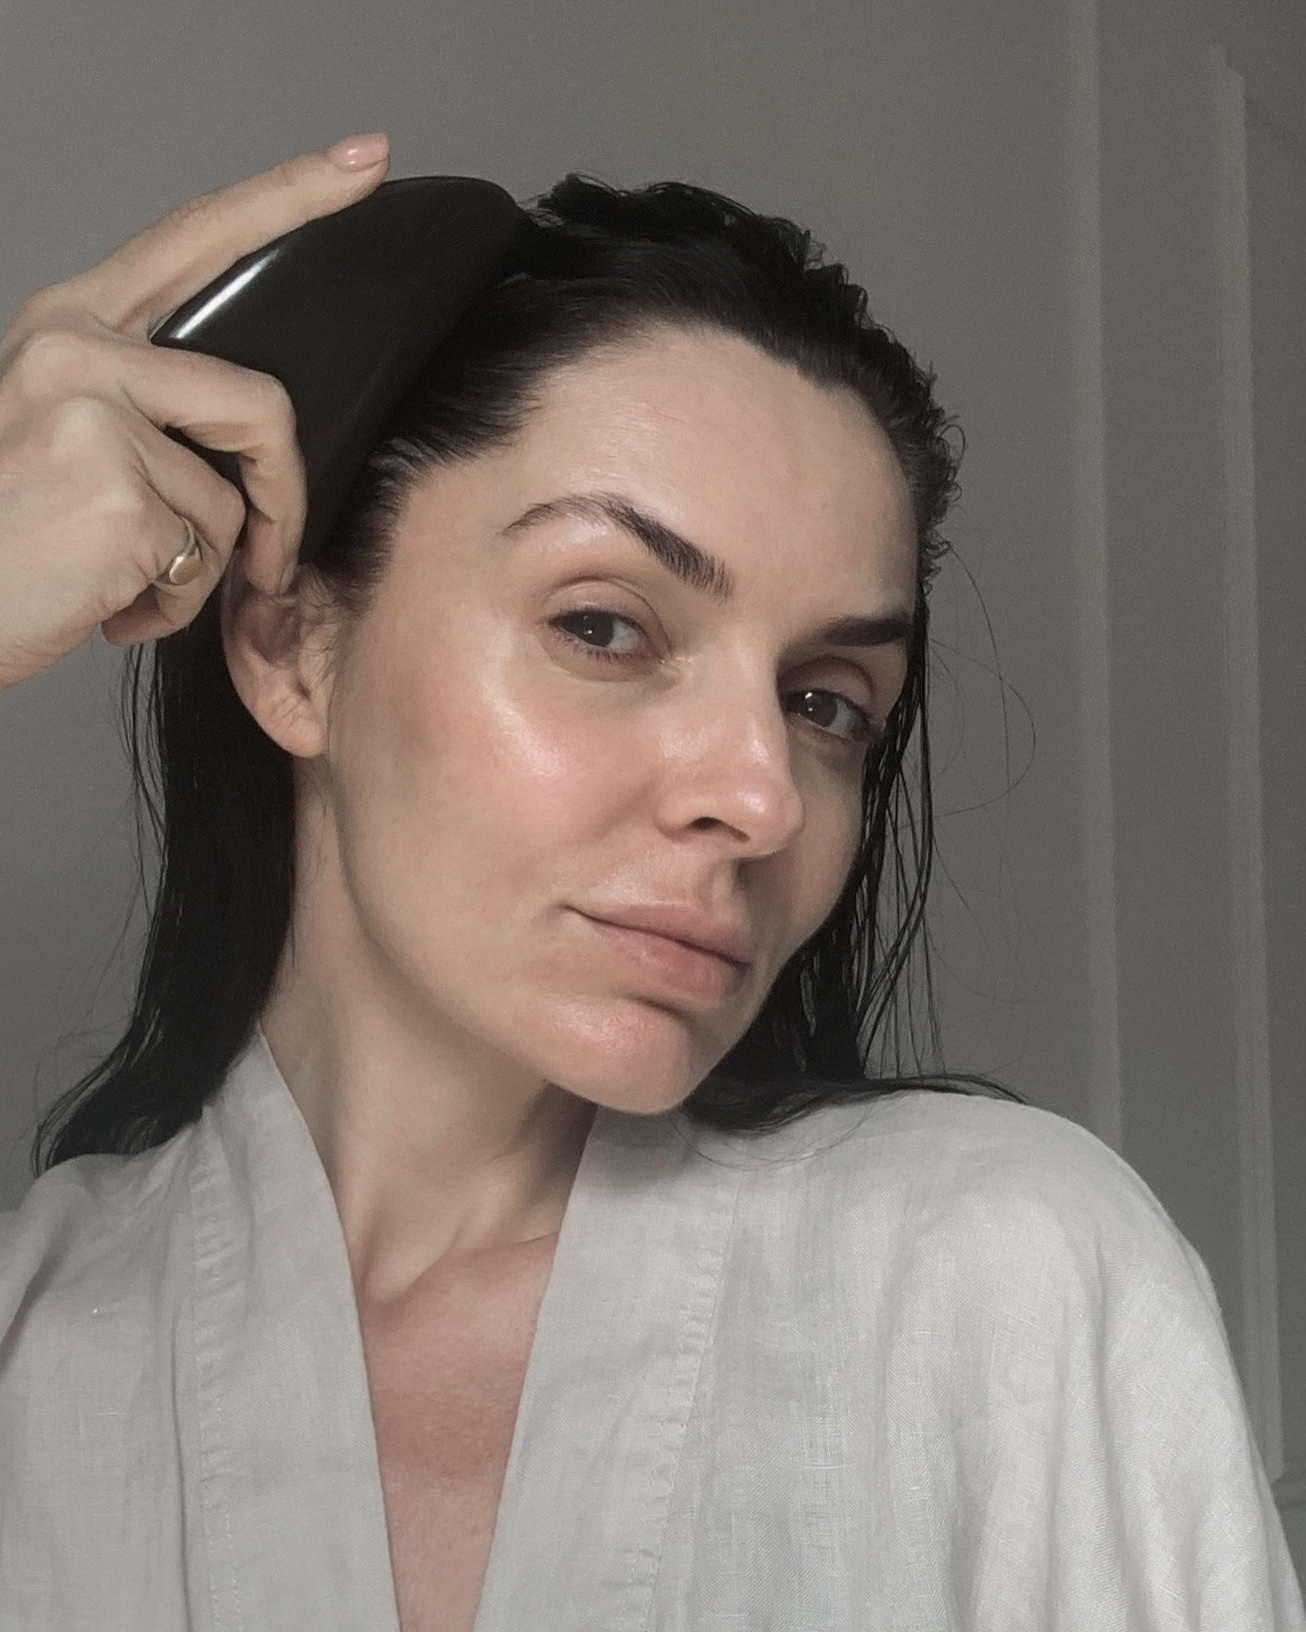 how to use a gua sha tool for stress relief, lympahtic drainage & sculpting the face with ada ooi